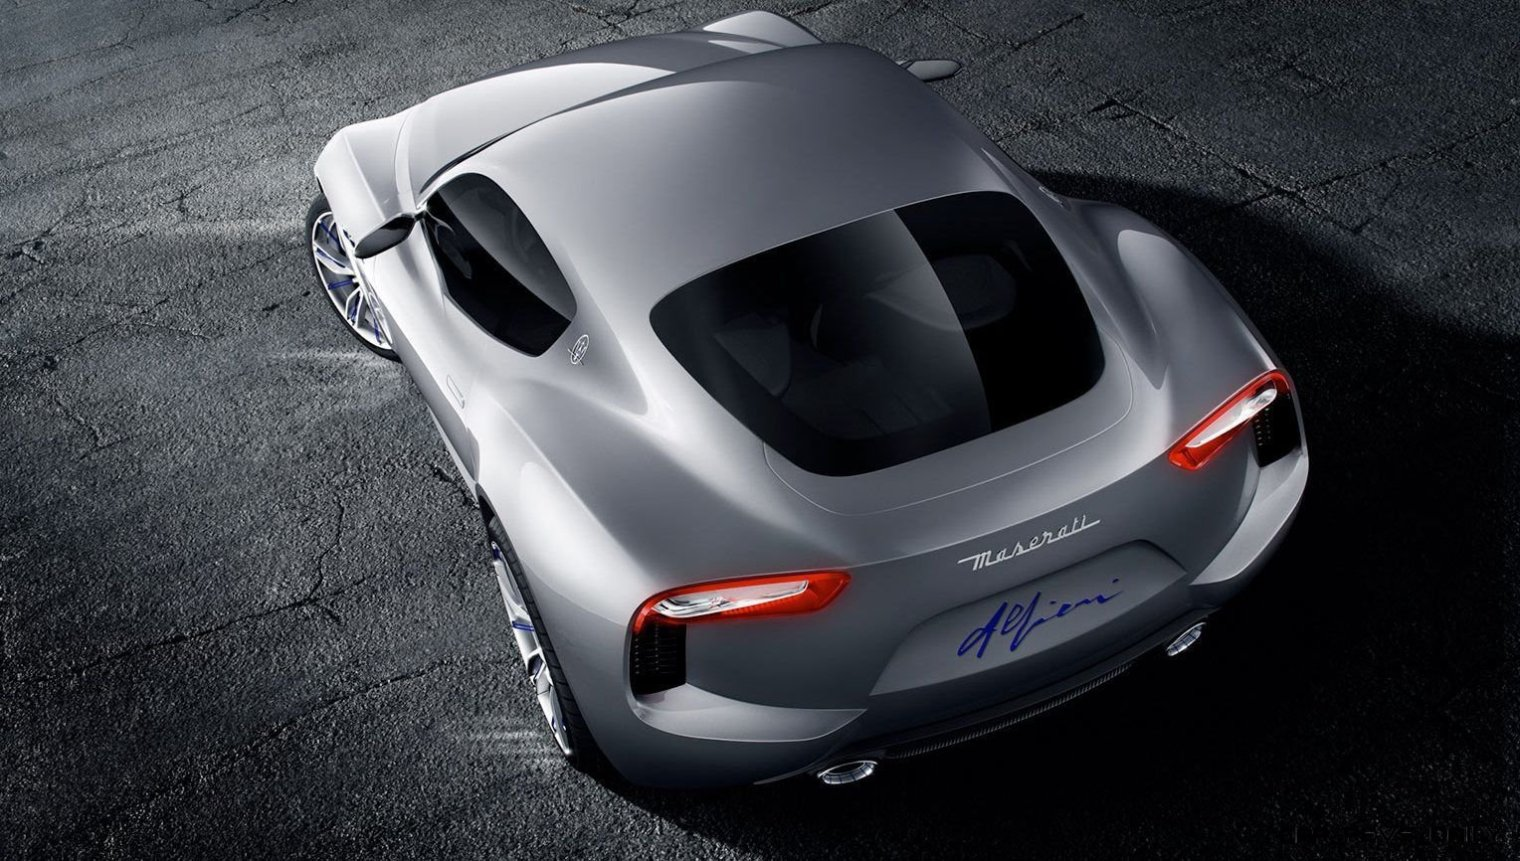 Alfieri Maserati Concept -- Analytical Assessment of the Trident's Flagship Prototype -- 52 Photos, Sketches, Reveal Images 21